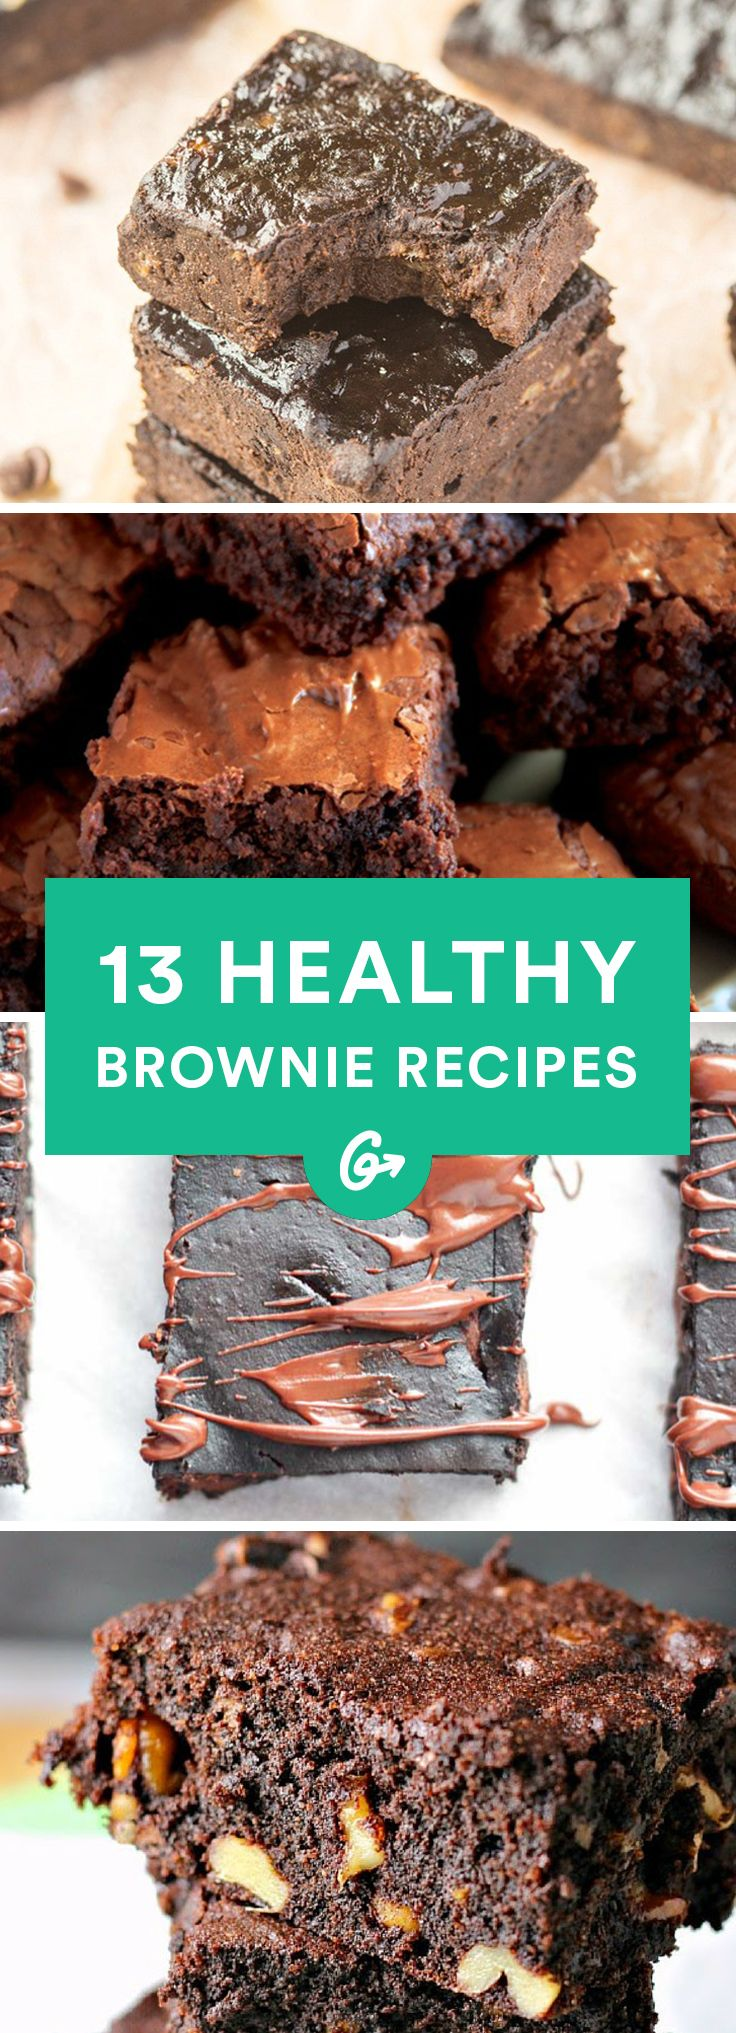 13 Bomb-Ass Healthy Brownie Recipes #healthy #brownie #recipes http://greatist.com/eat/healthy-brownie-recipes